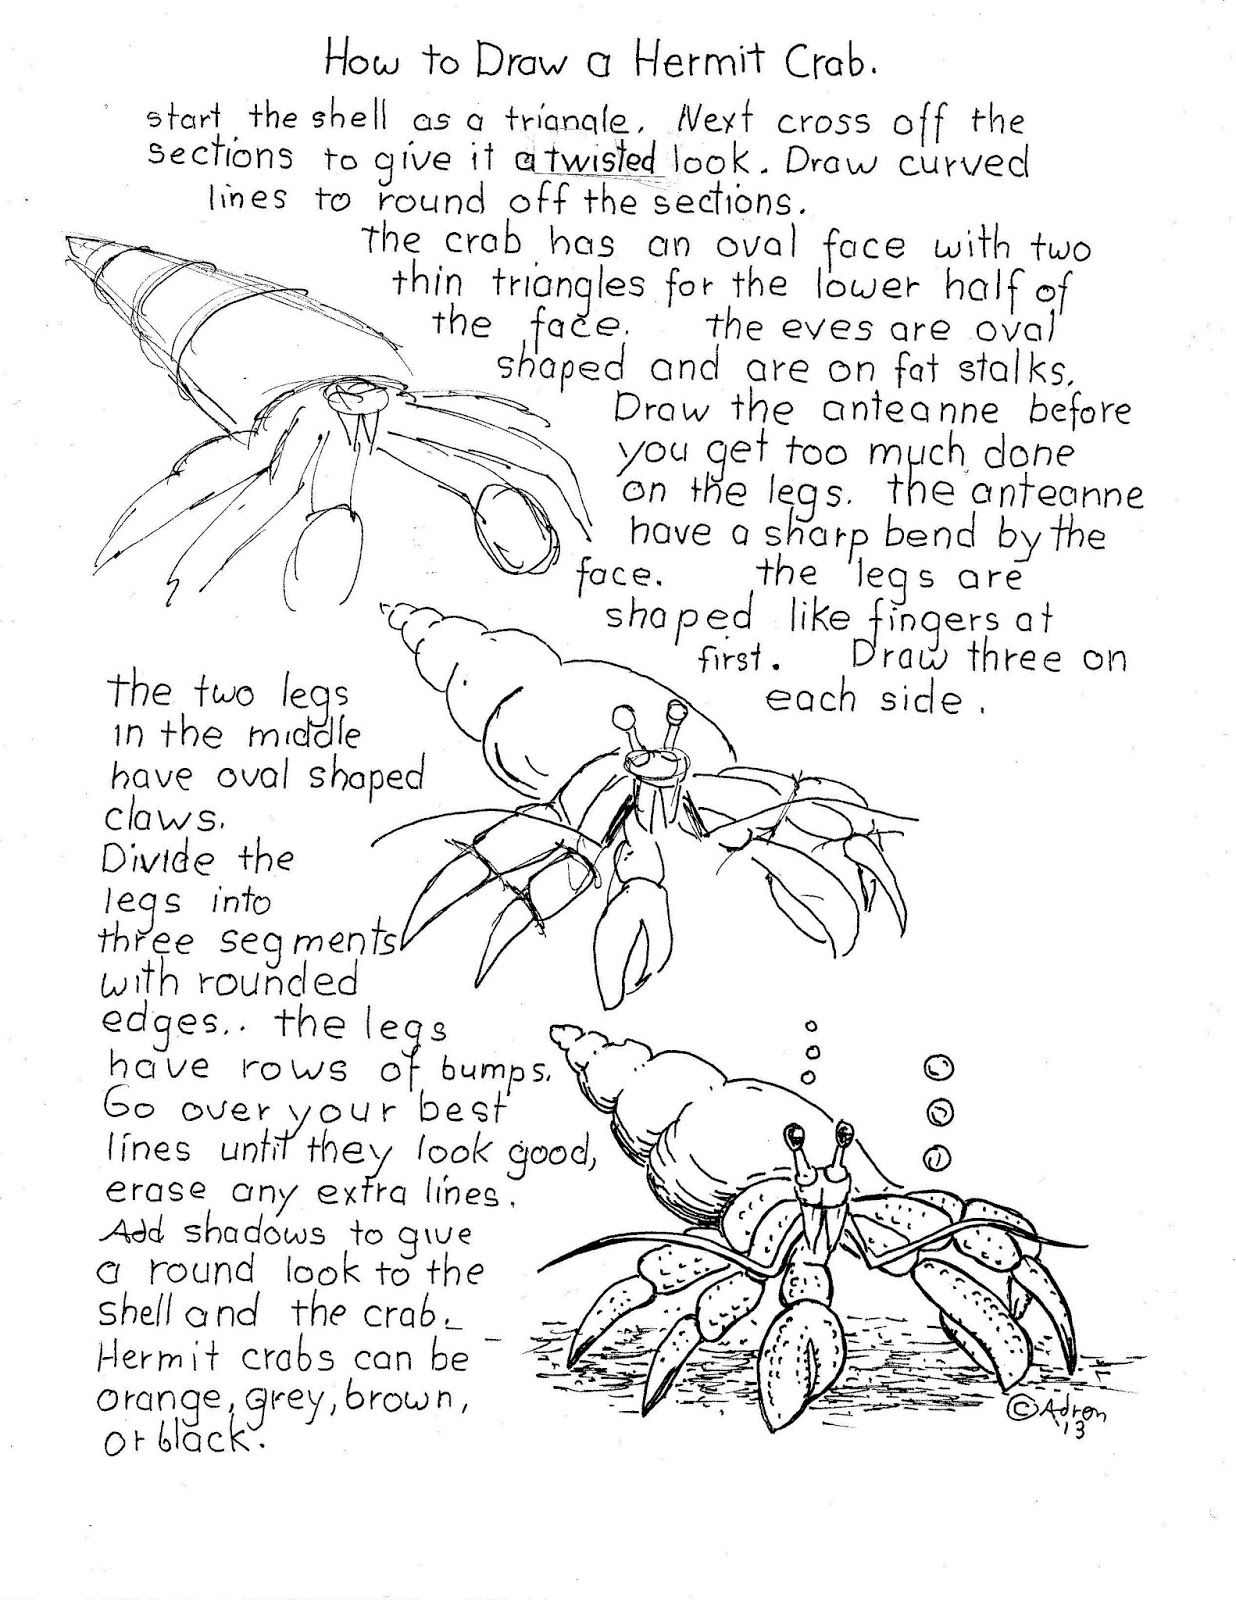 How To Draw A Hermit Crab Worksheet